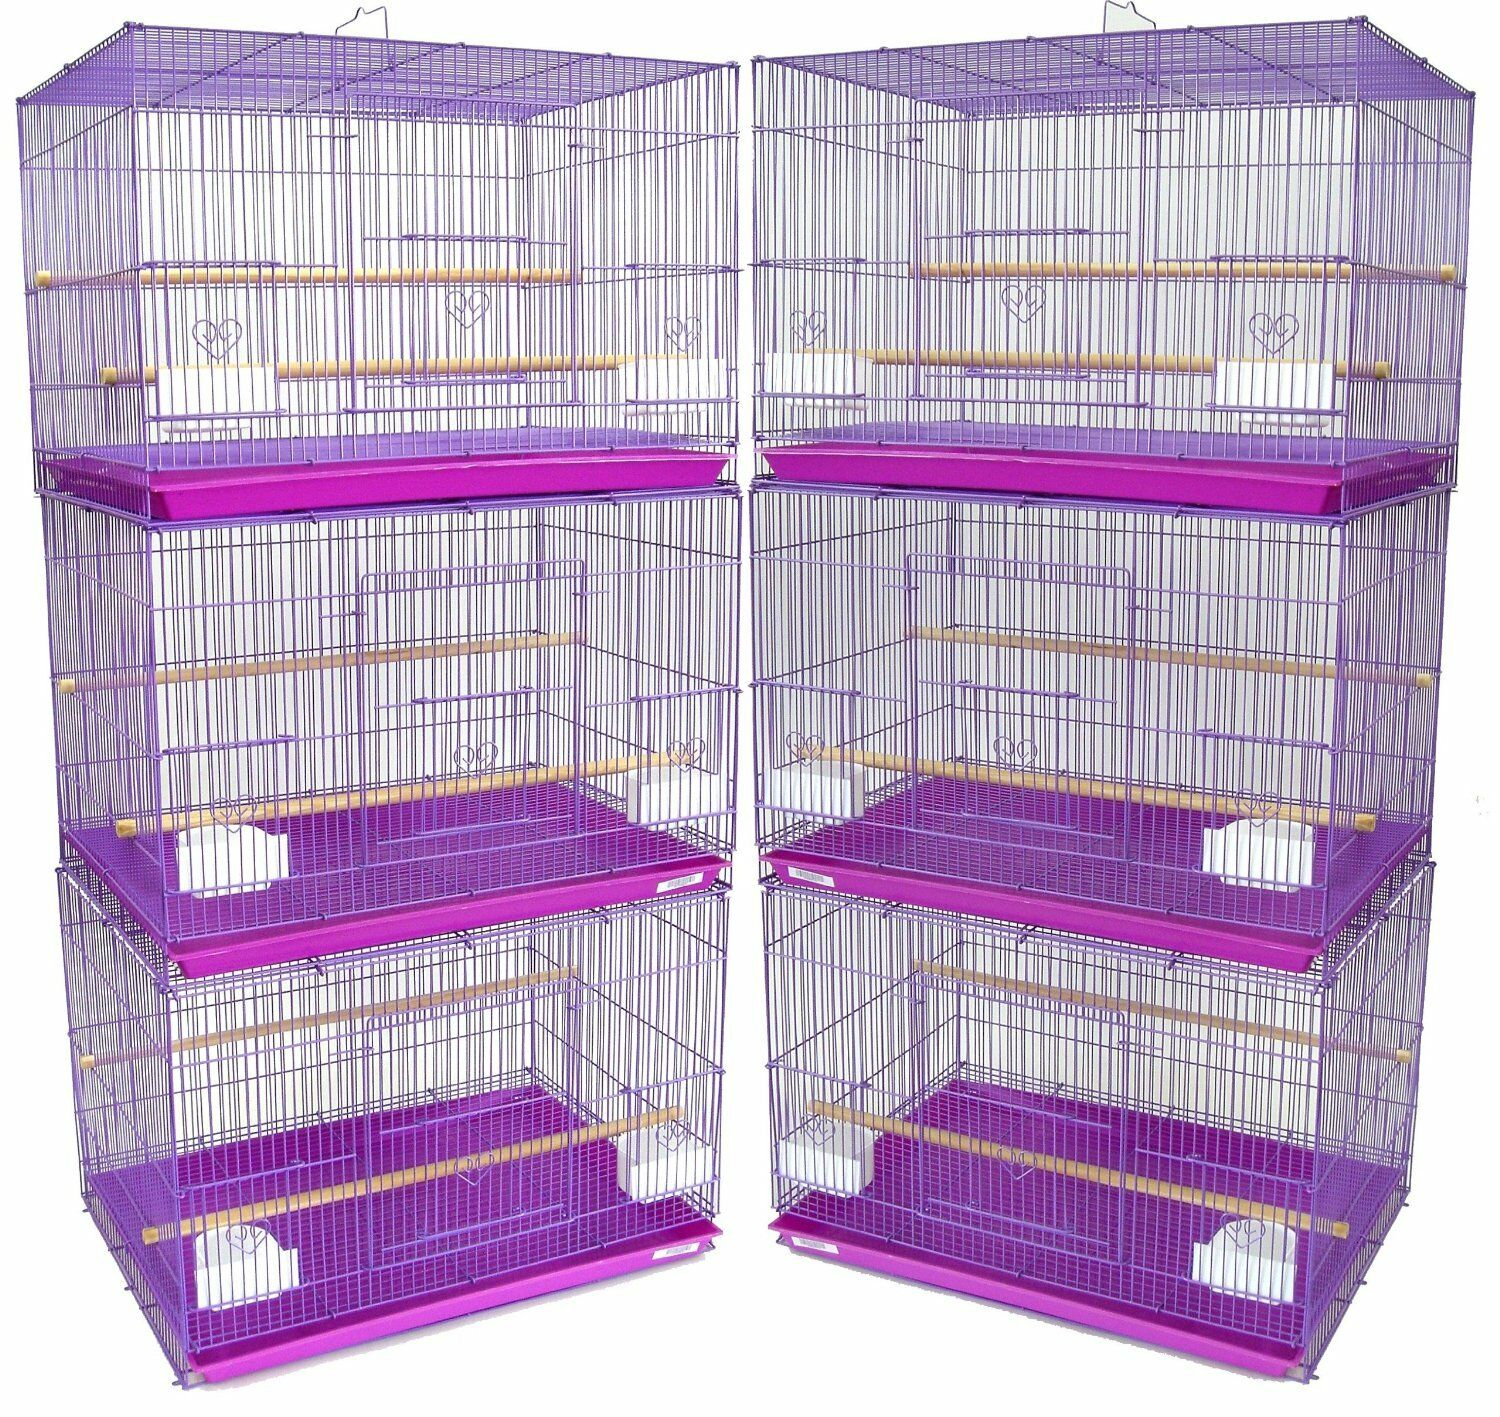 Lot of 6 Lavender Aviary Canary Breeding Breeder Bird Cages 24x16x16 H --257